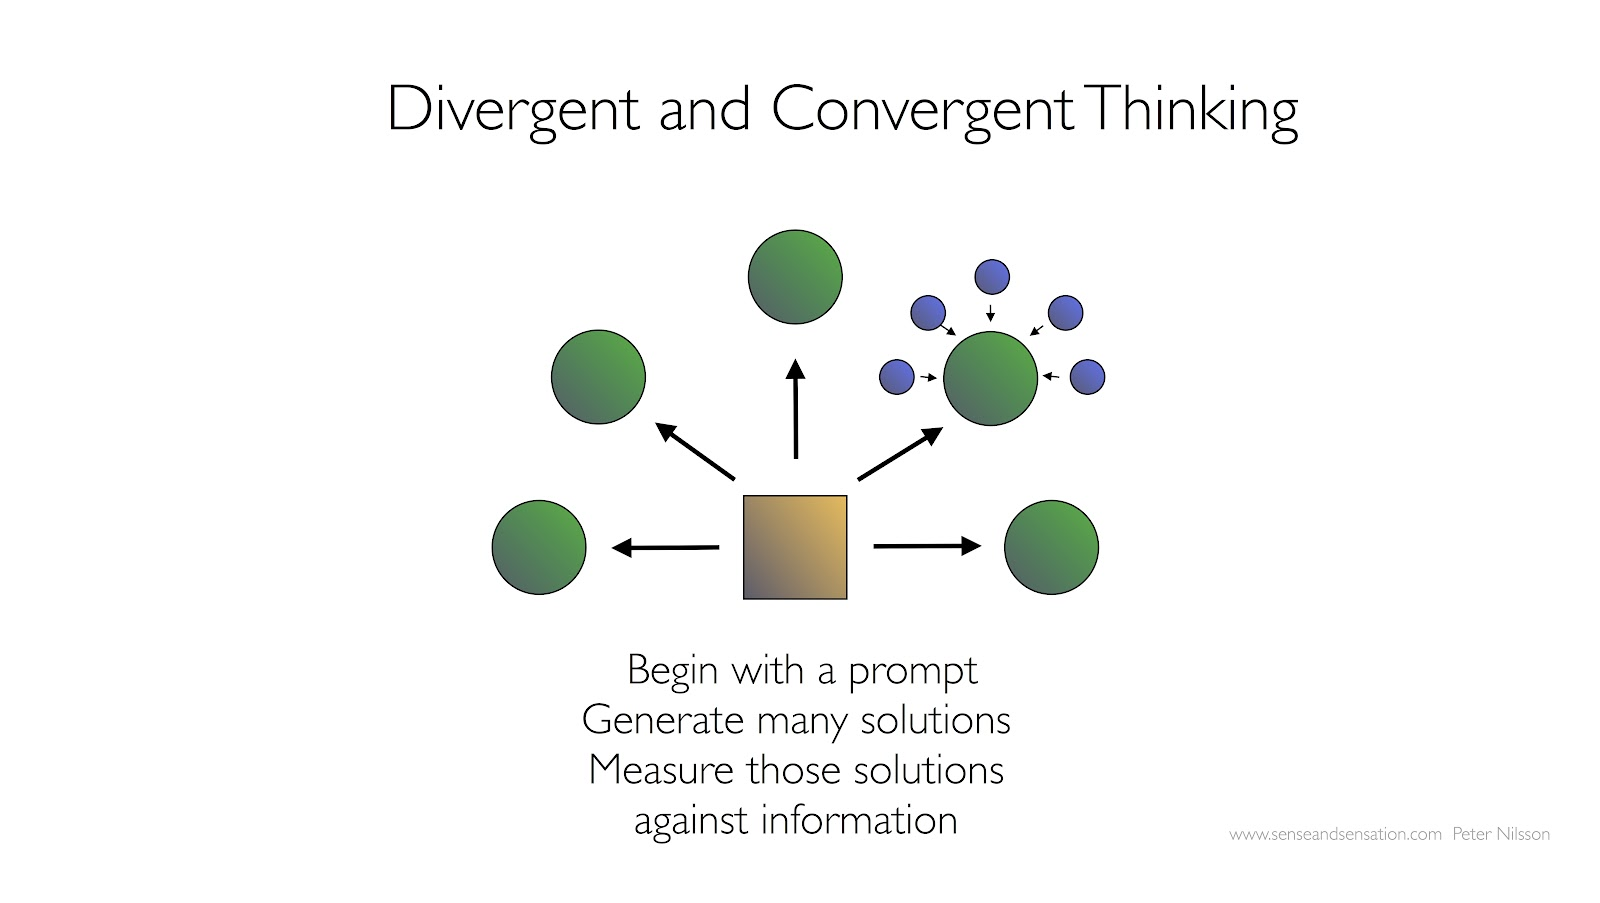 converge definition The definition of convergence refers to two or more things coming together, joining together or evolving into one an example of convergence is when a crowd of people all move together into a unified group.